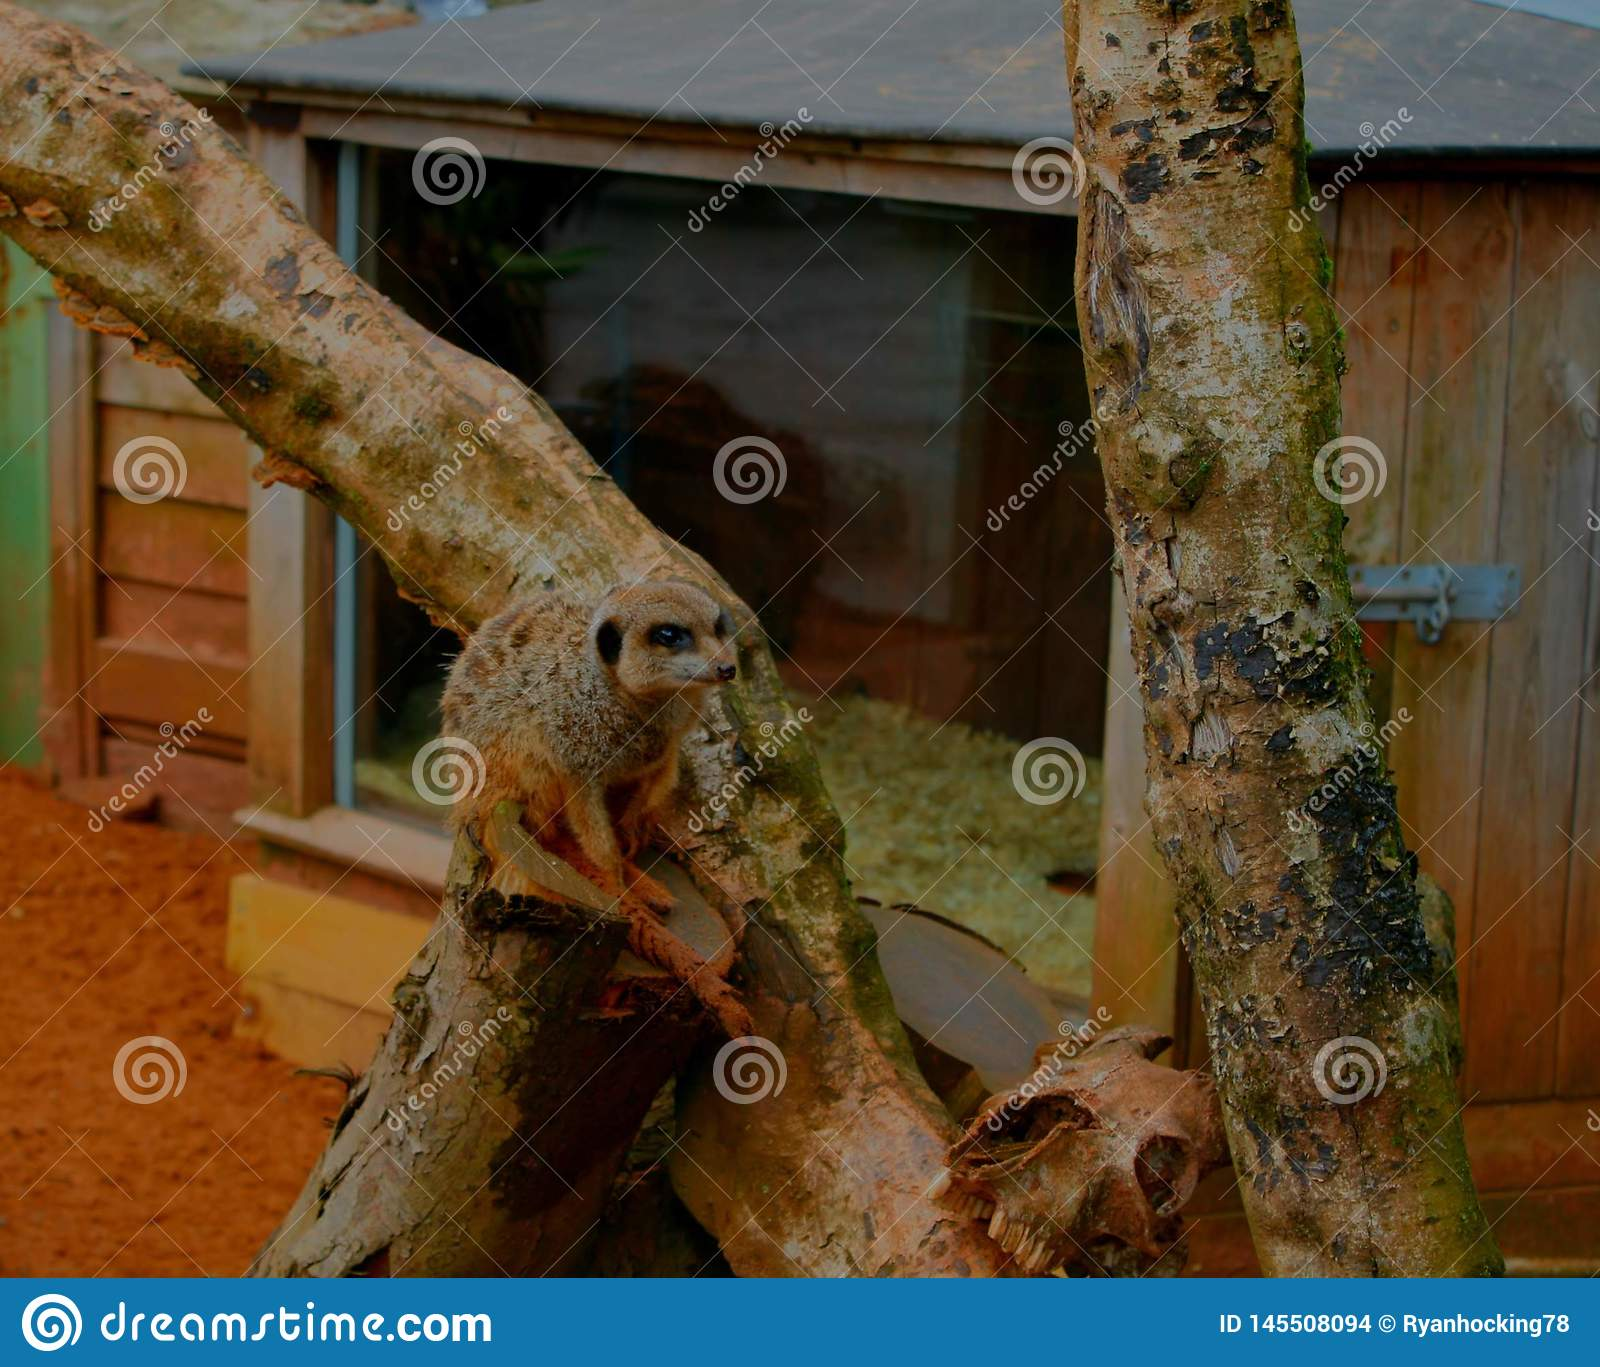 A meerkat sitting on a tree branch